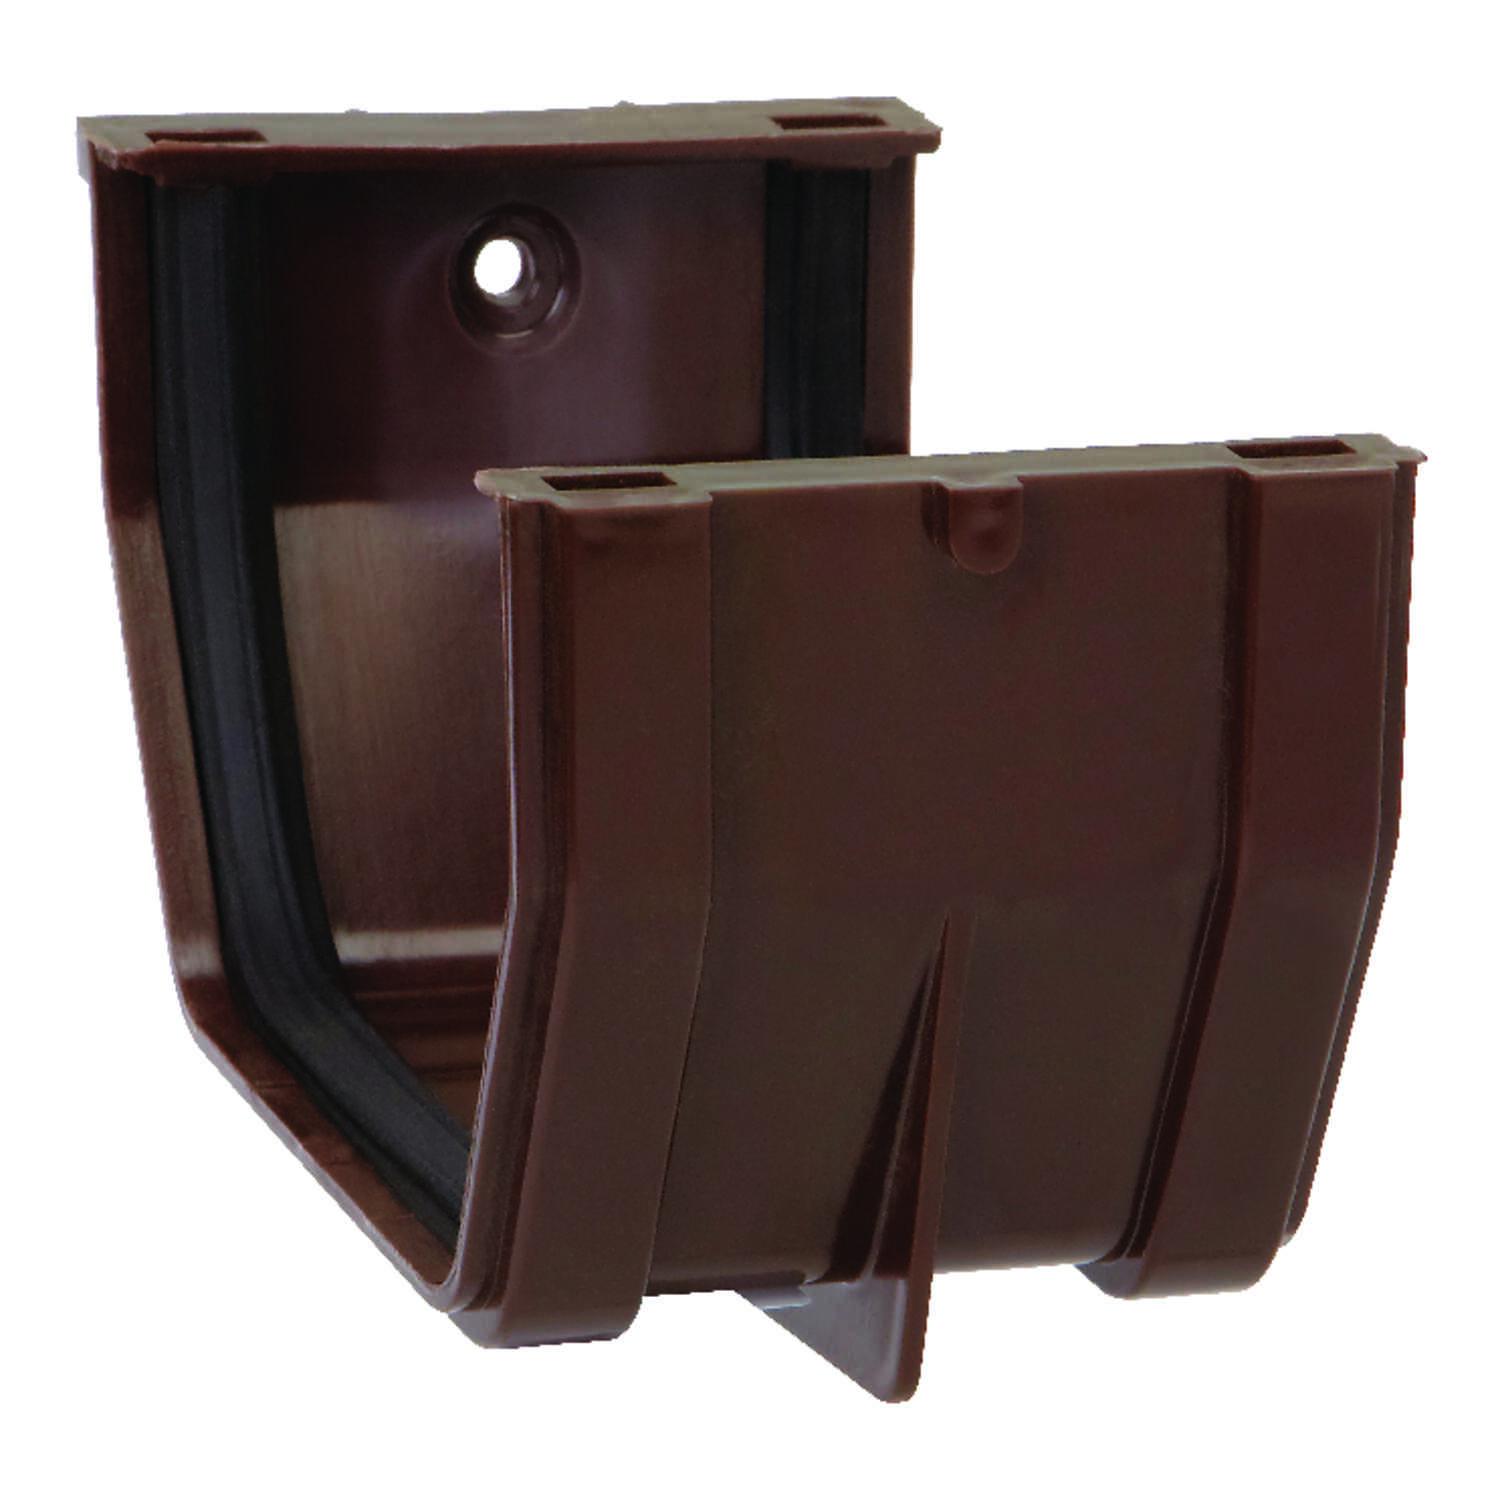 Raingo  5 in. H x 3 in. W x 4.9 in. L Brown  Vinyl  Slip Joint